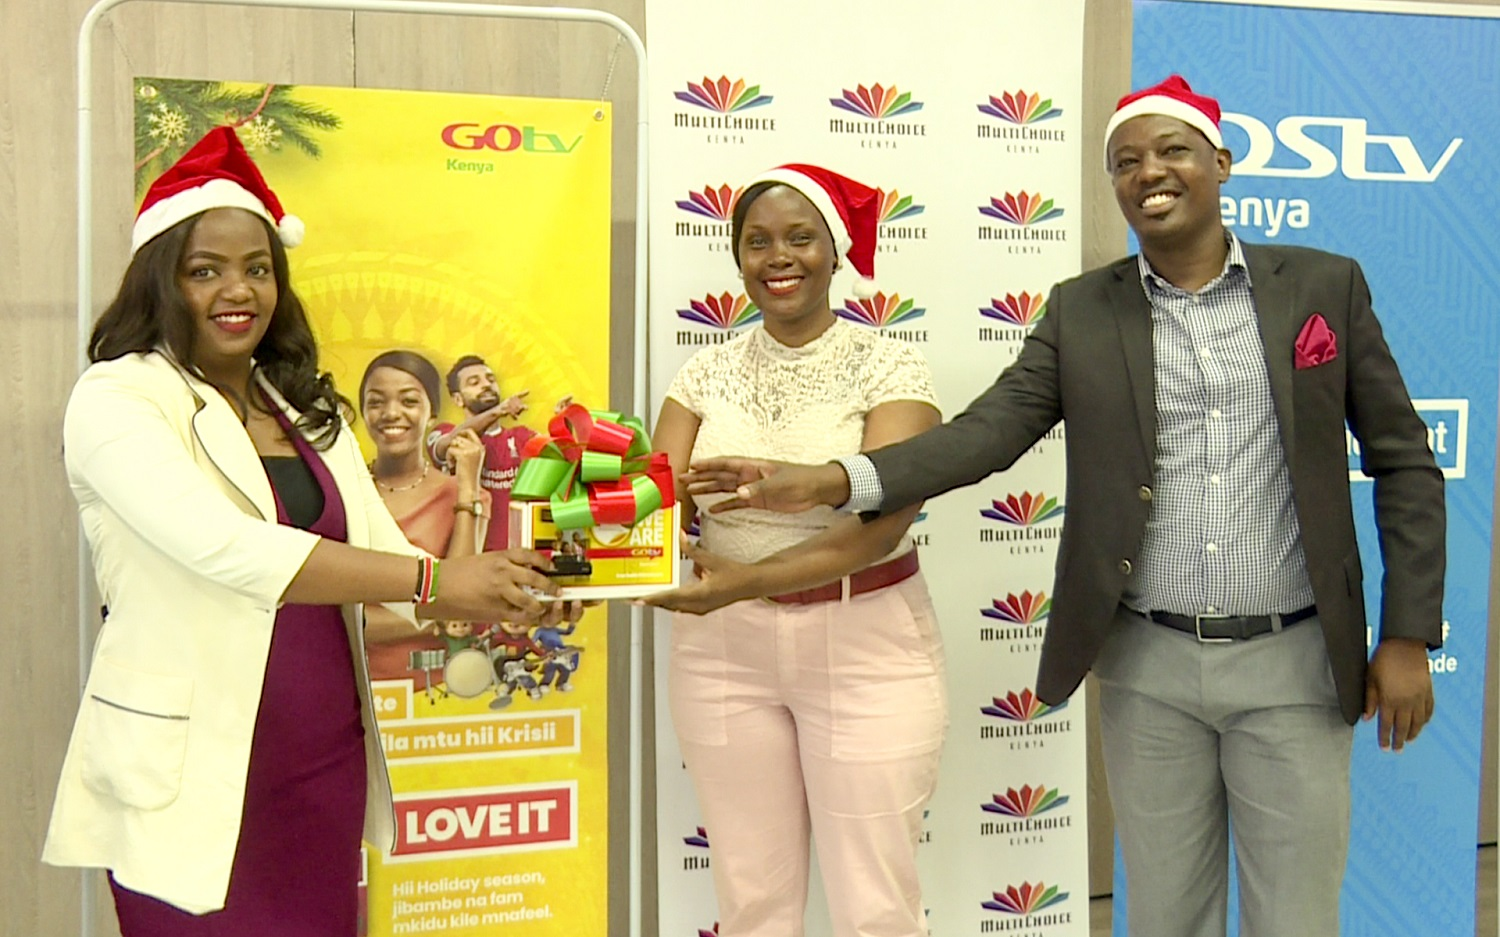 Multichoice kenya launches festive campaign www.businesstoday.co.ke